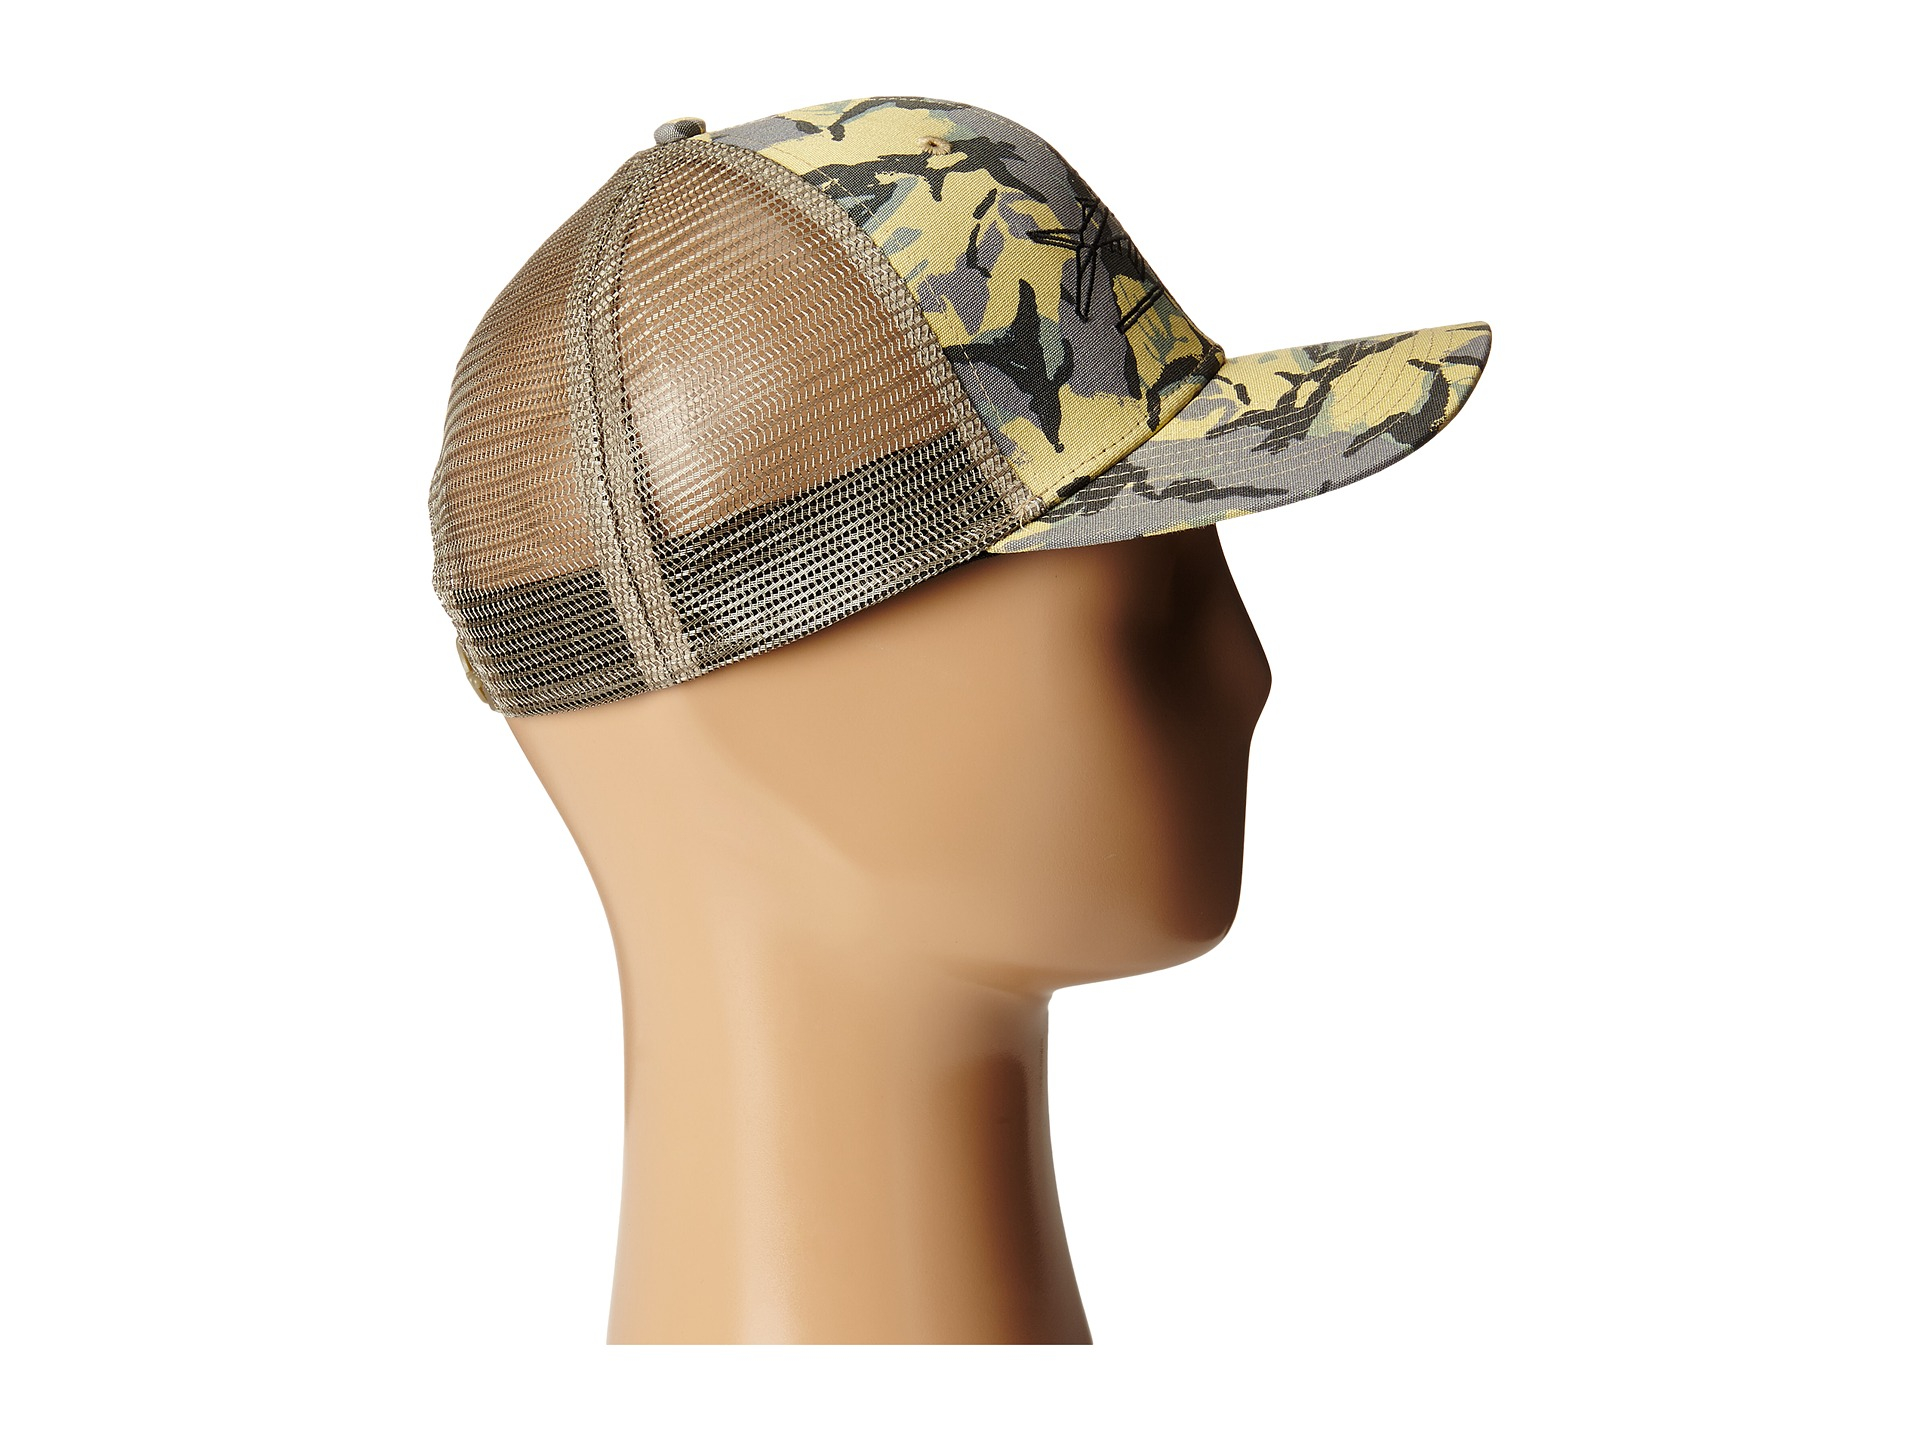 acace212a4f4e Patagonia Geodesic Flying Fish Trucker Hat in Green for Men - Lyst